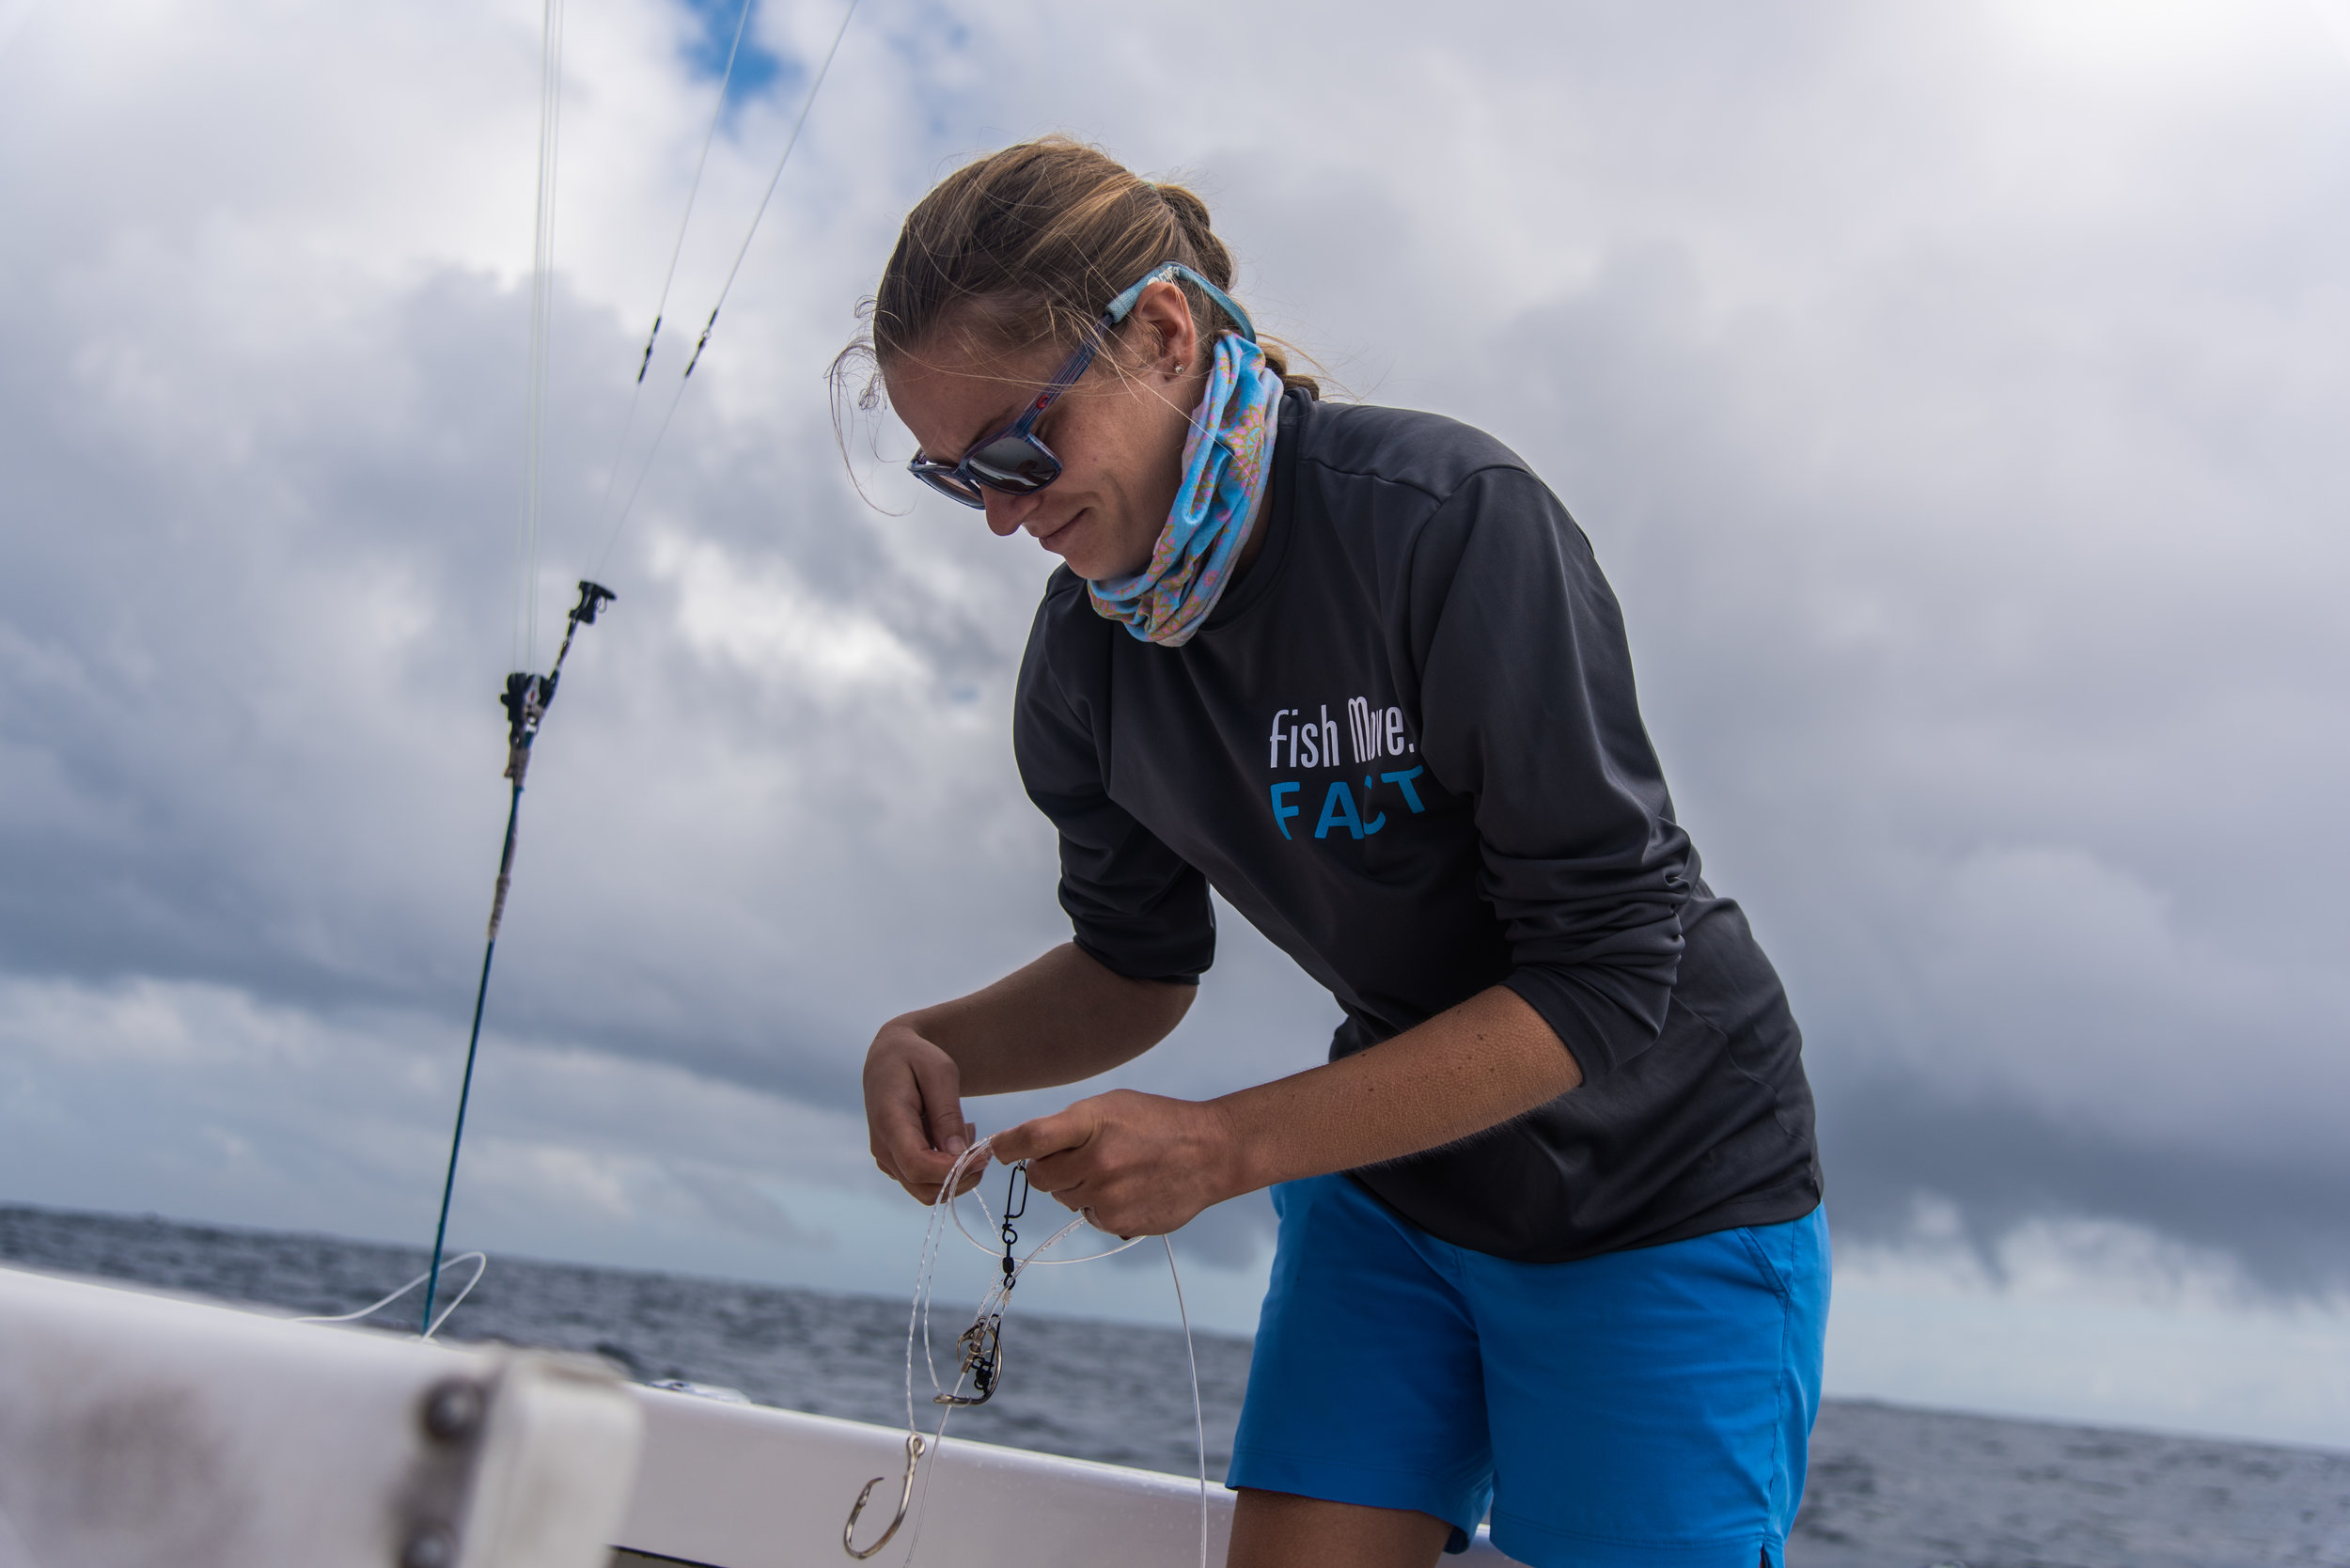 Breanna DeGroot - Breanna DeGroot, MSc. is a FEC research technician on the grouper guard project. She joined the project after graduating with her M.S. in Biological Sciences from Florida Atlantic University in 2018 while working for the FEC Lab. Prior to joining the lab, Breanna worked at Mote Marine Laboratory in both the ocean acidification and spotted eagle ray conservation program from 2013-2016. During her time at Mote she also worked as a education specialist teaching a variety of educational programs for children ages 6-15. Her primary research interests lie in the movement ecology, behavior, and conservation of fishes.